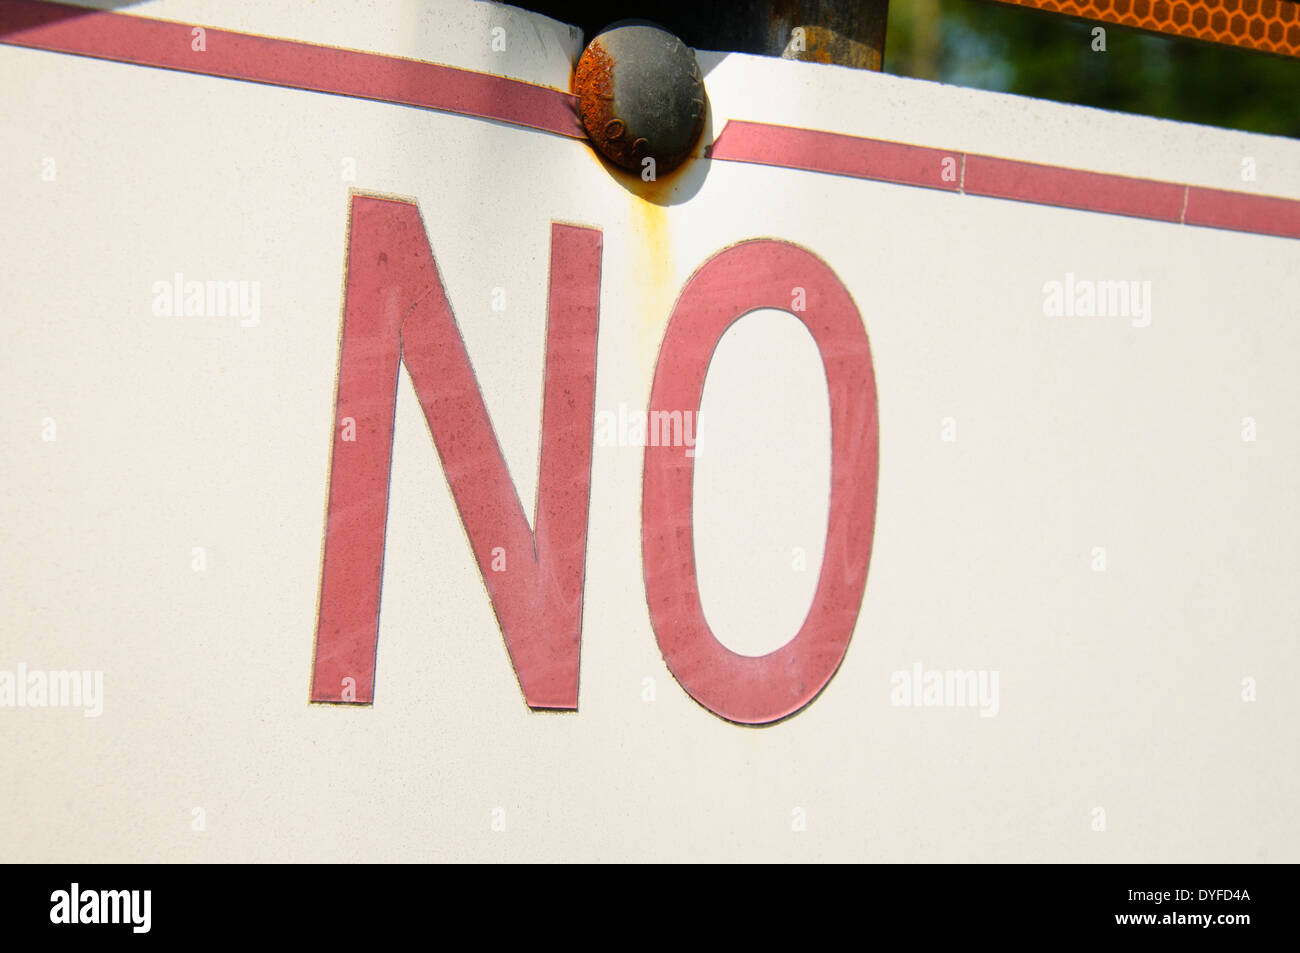 Tight shot of the word no on a street sign. - Stock Image